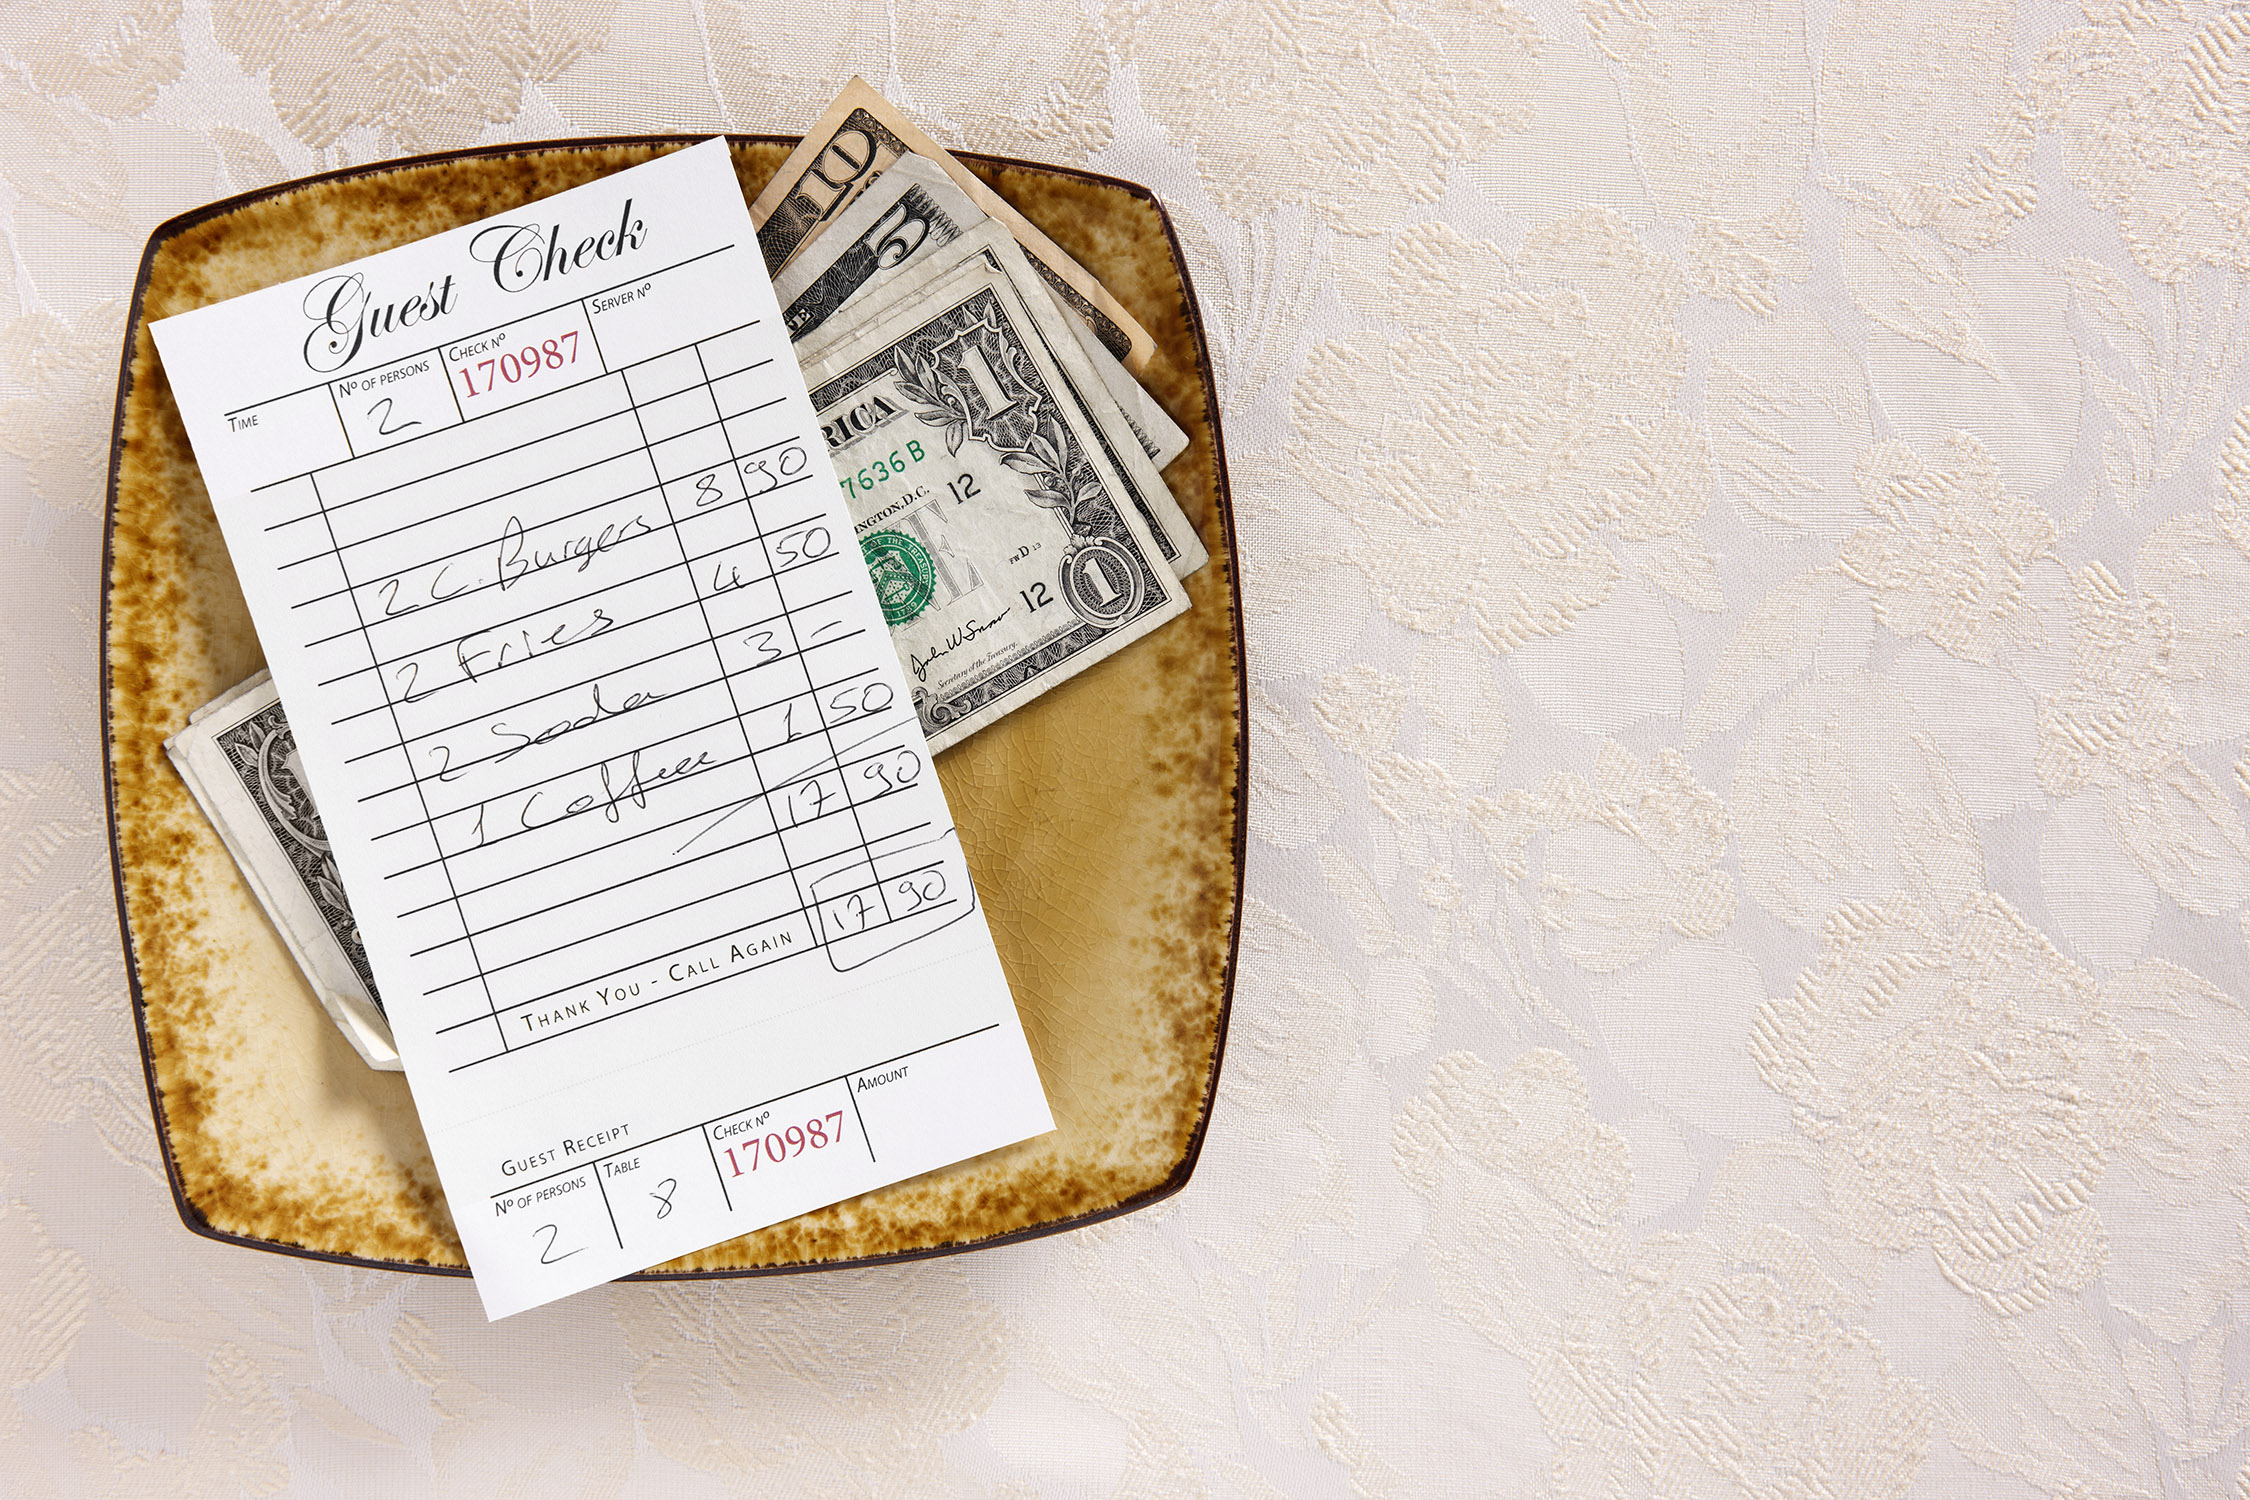 Guest check on the tip plate in a restaurant with US Dollars